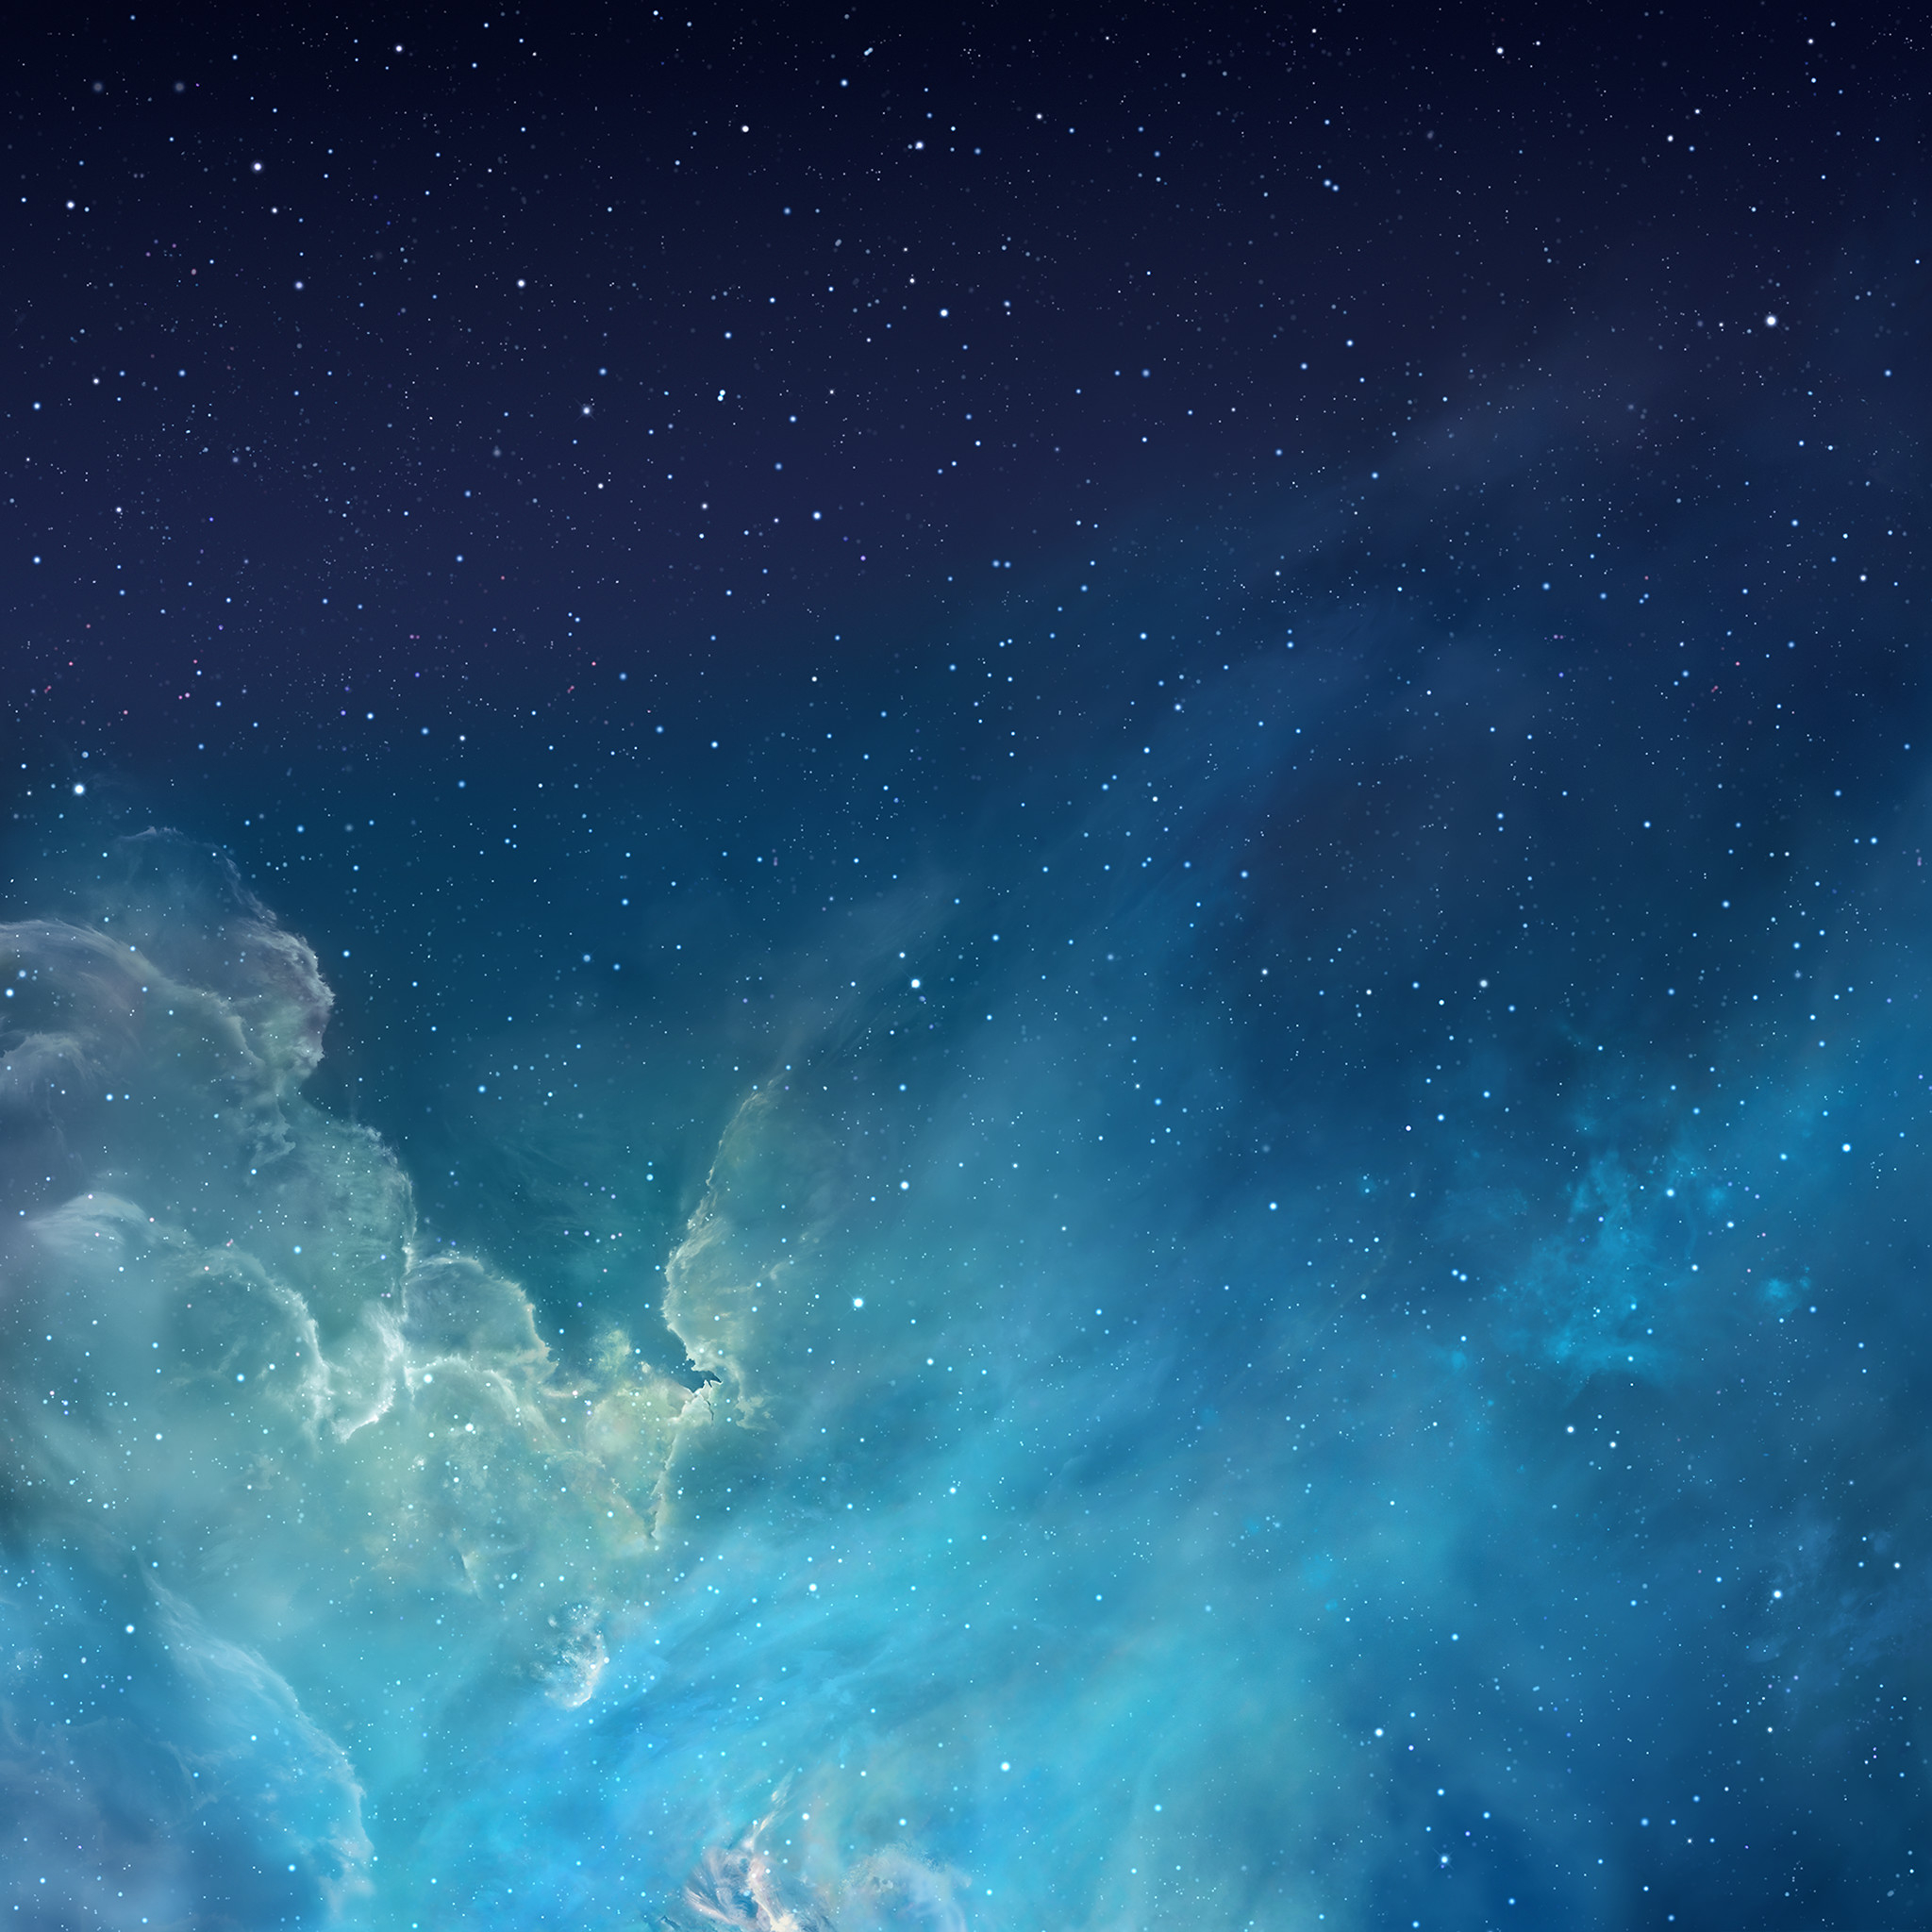 IOS 7 iPad Wallpapers 52 images